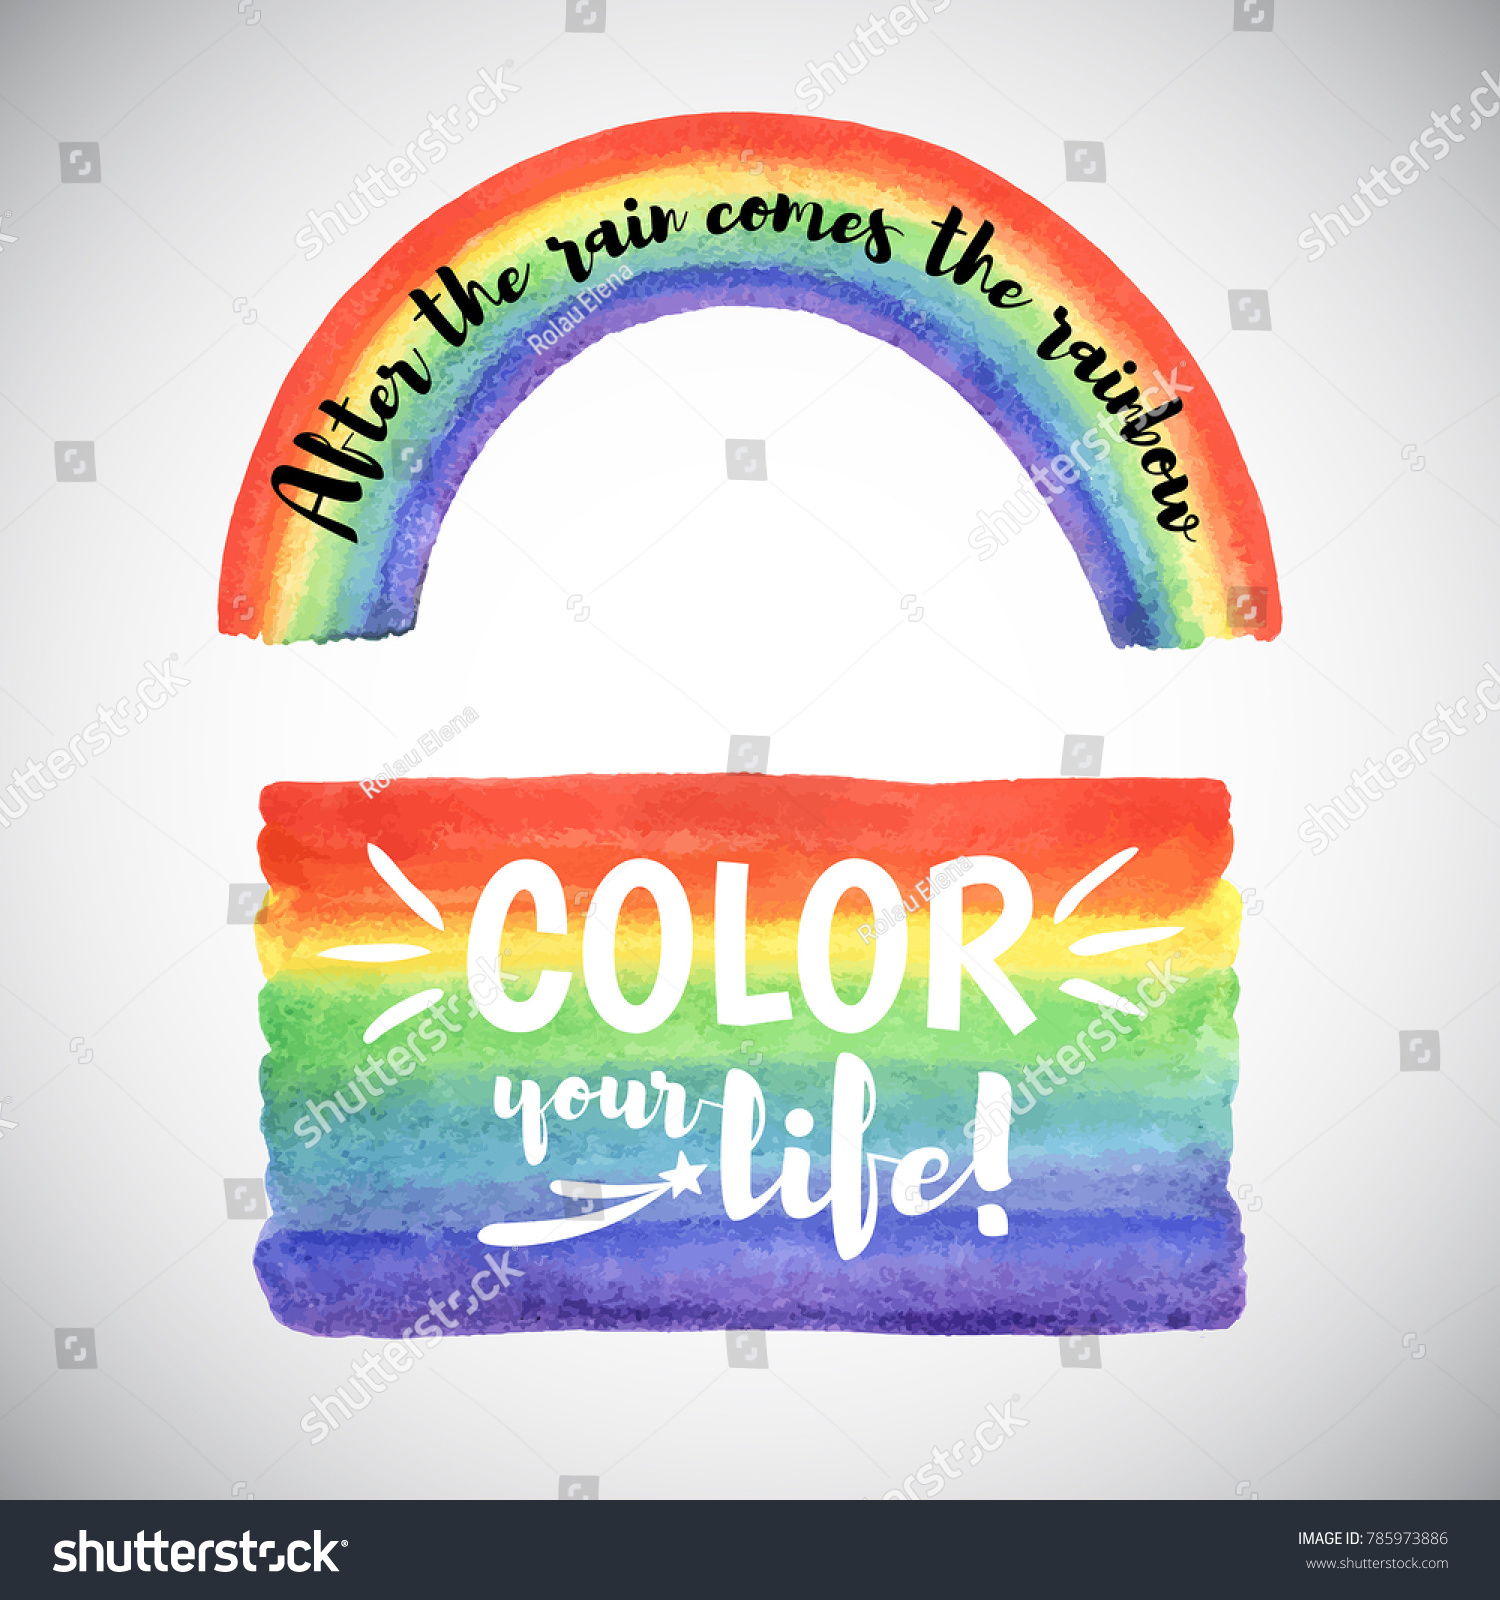 Color Your Life Quotes Watercolor Vector Rainbow Templates Inspiration Motivation Stock